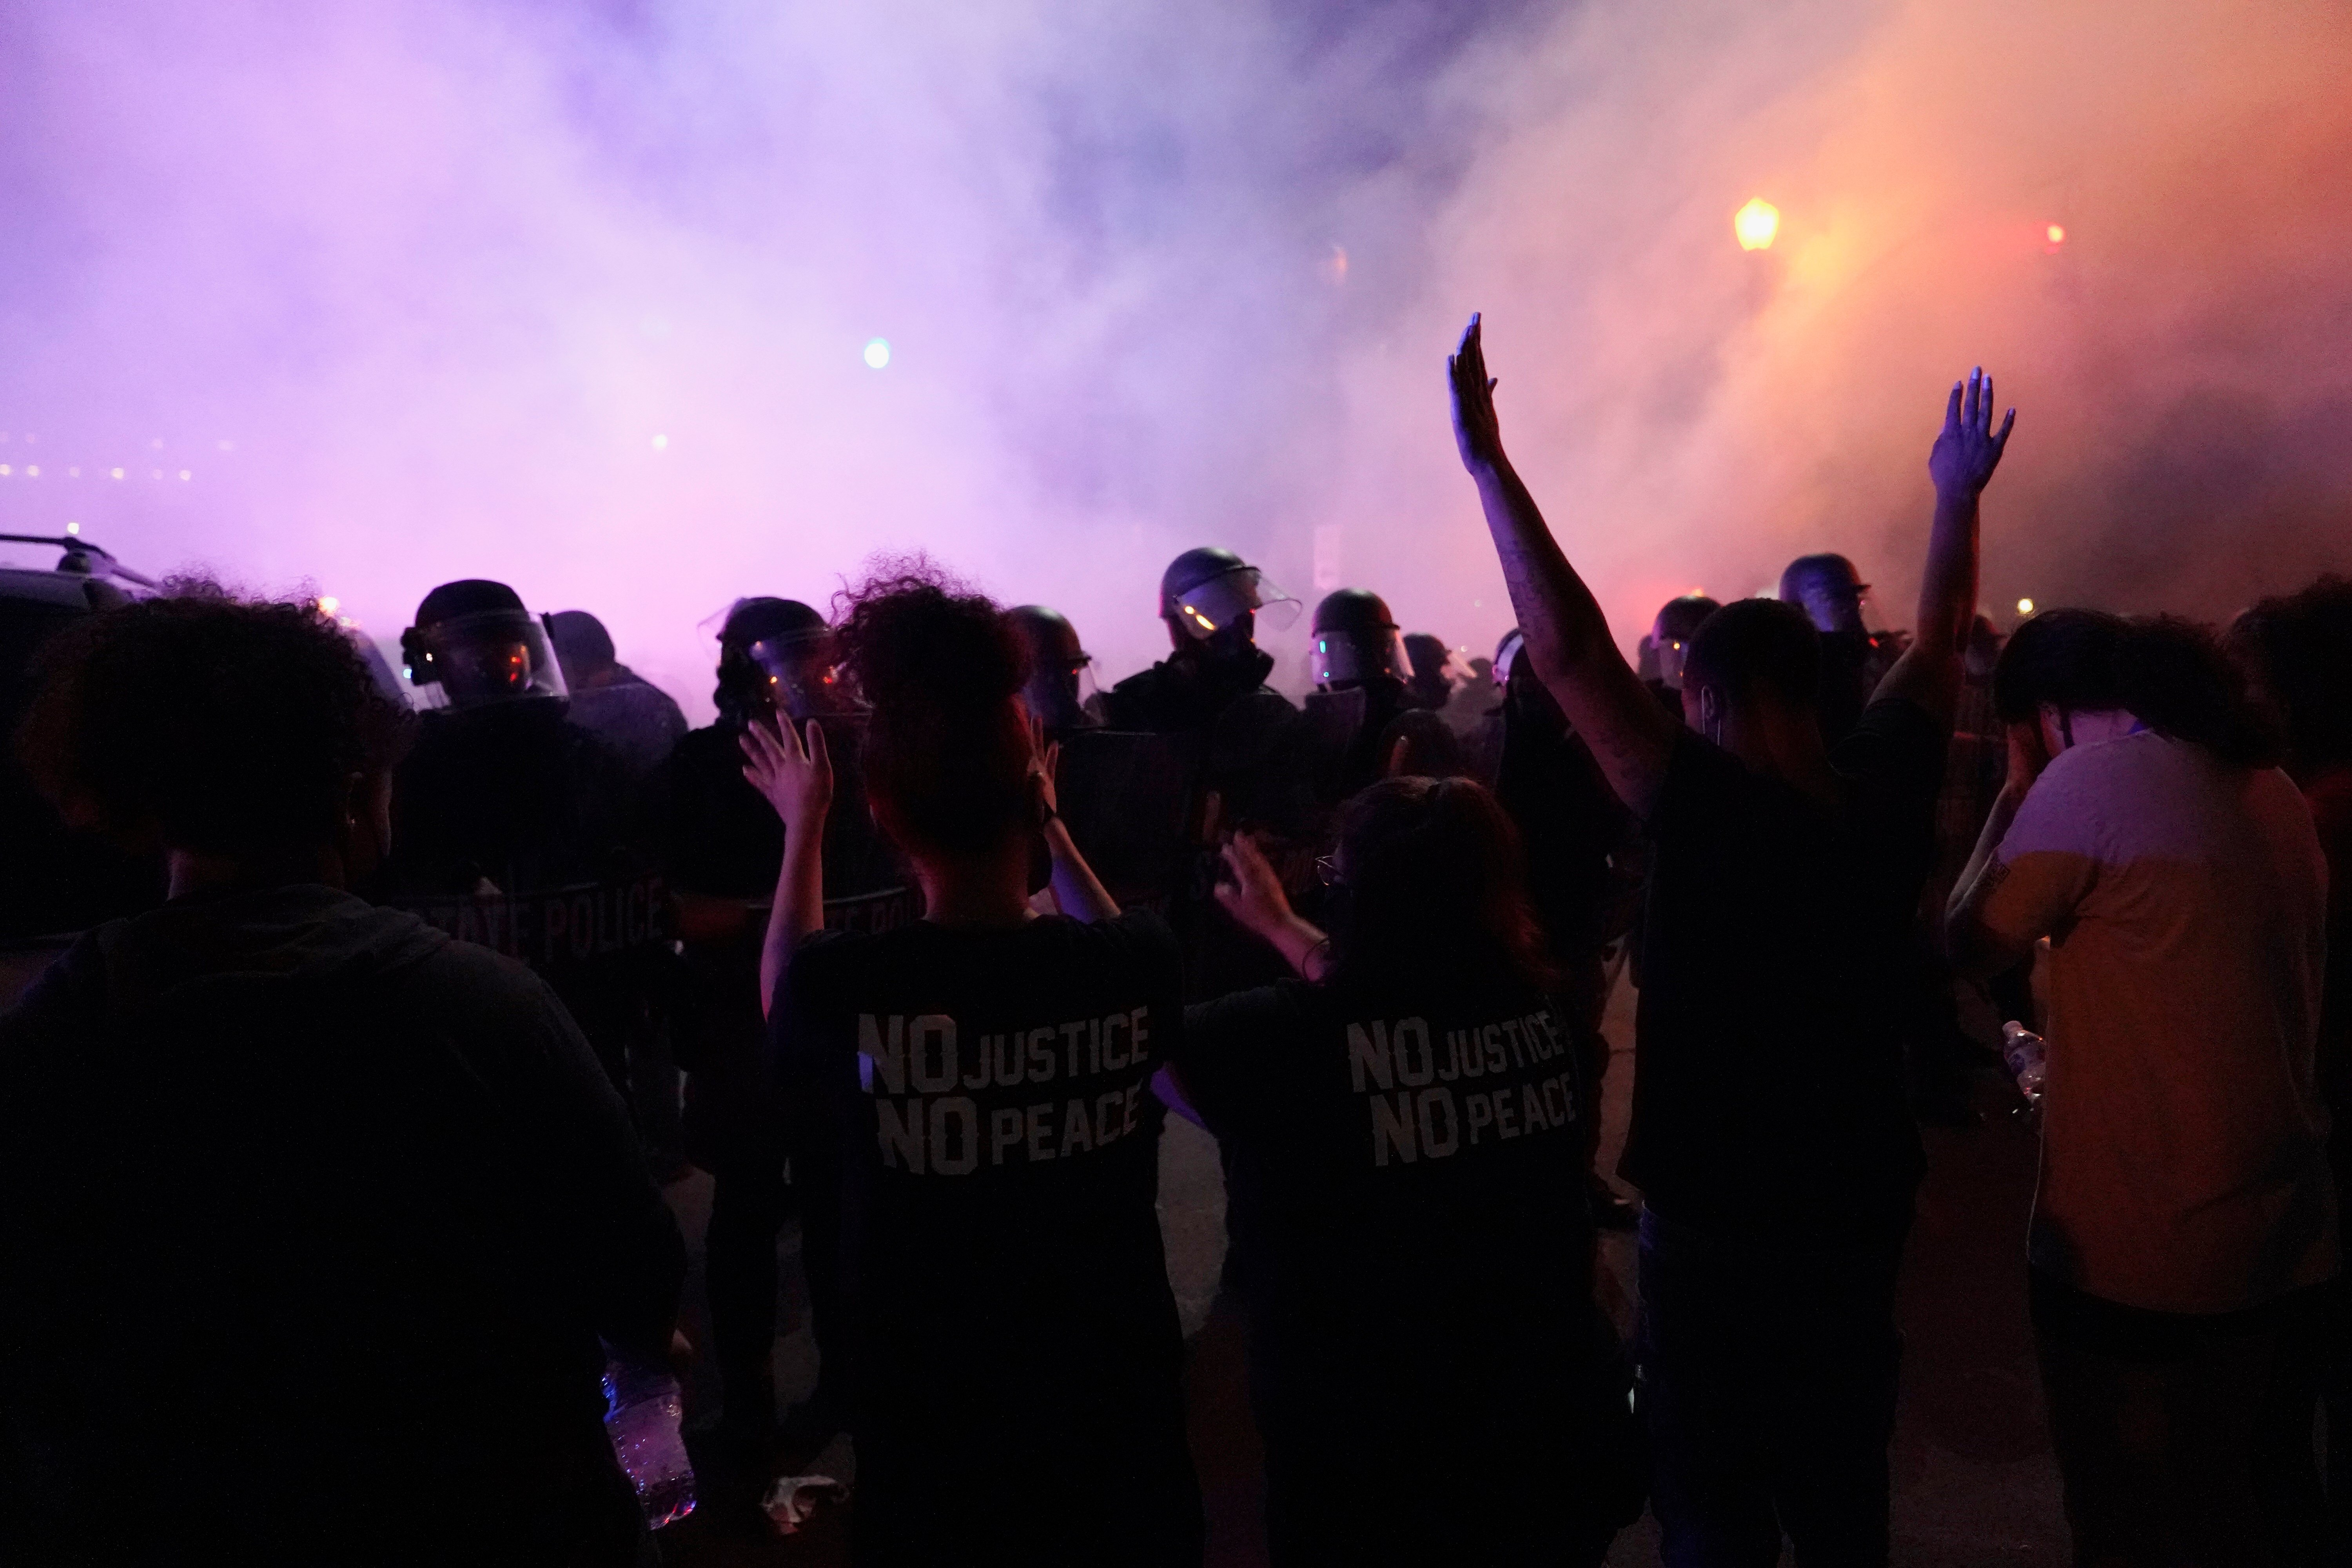 Tear gas is deployed into a Louisville, Kentucky, crowd on May 29, 2020. Several WLKY News crews reported being assaulted by protesters that evening. REUTERS/BRYAN WOOLSTON